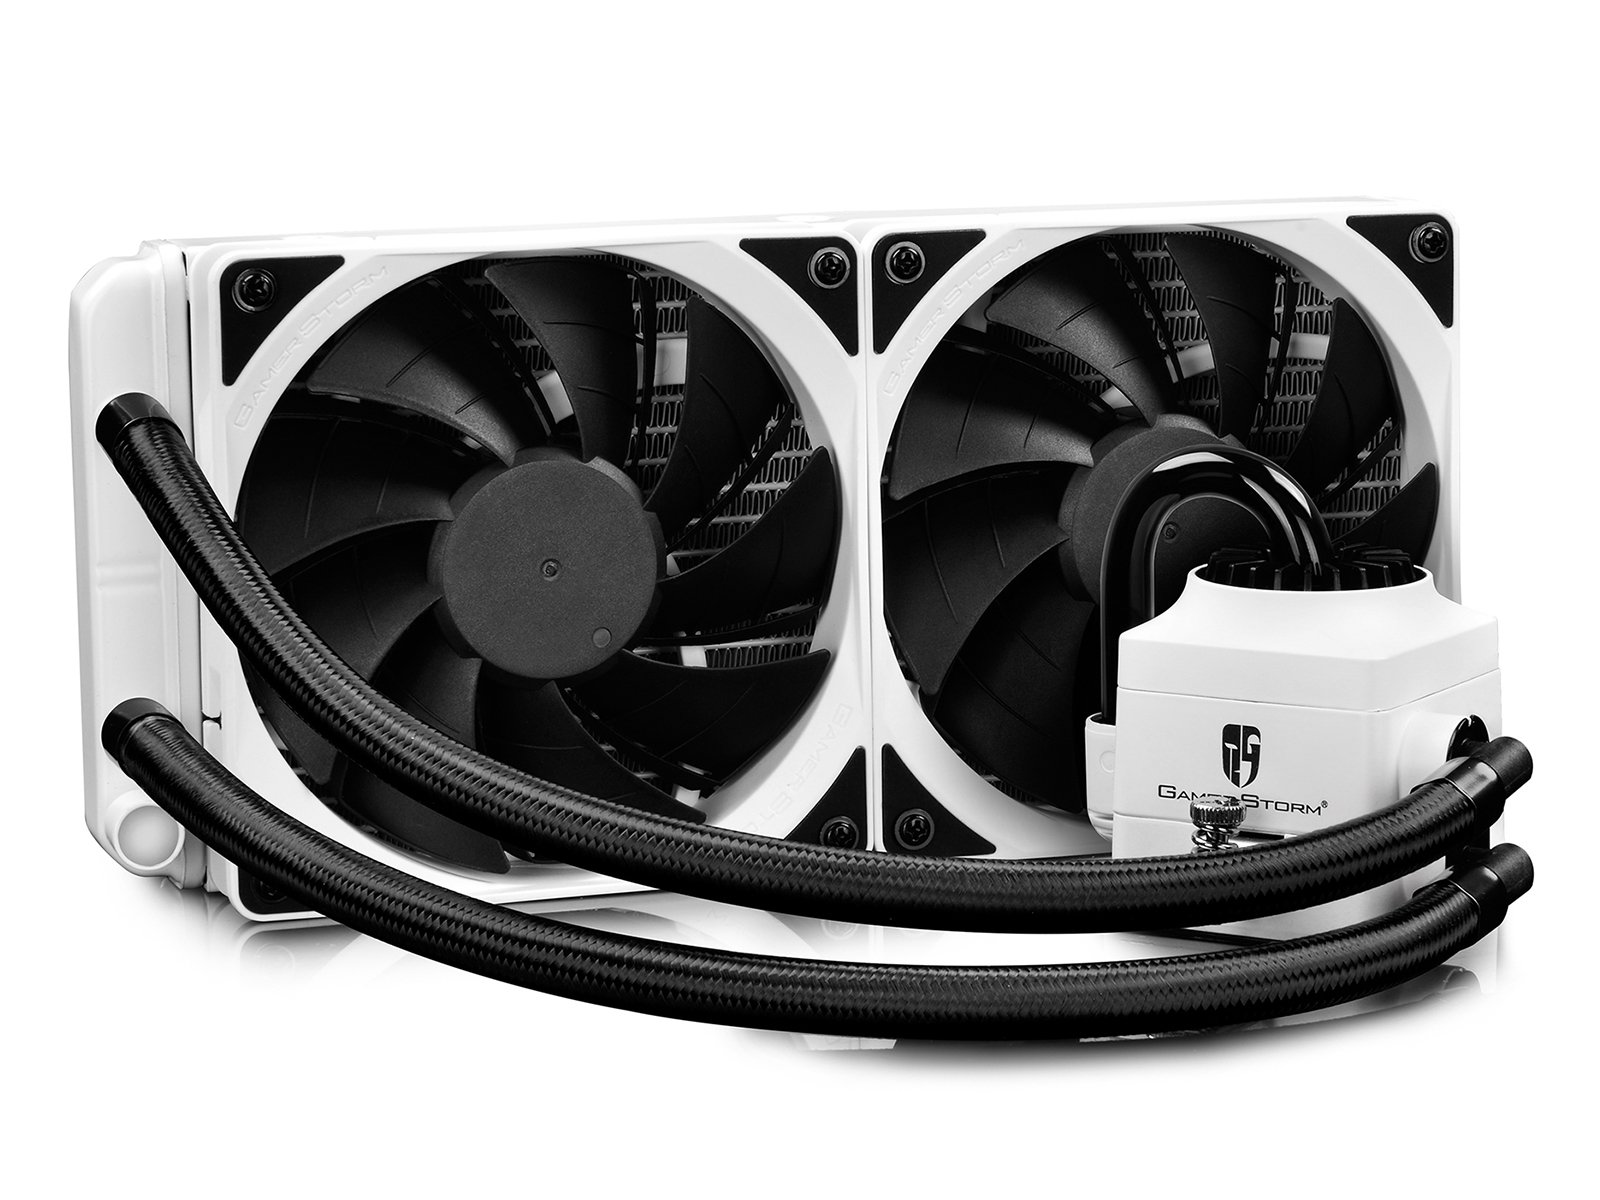 Whater Cooler Deepcool 240 ex RGB